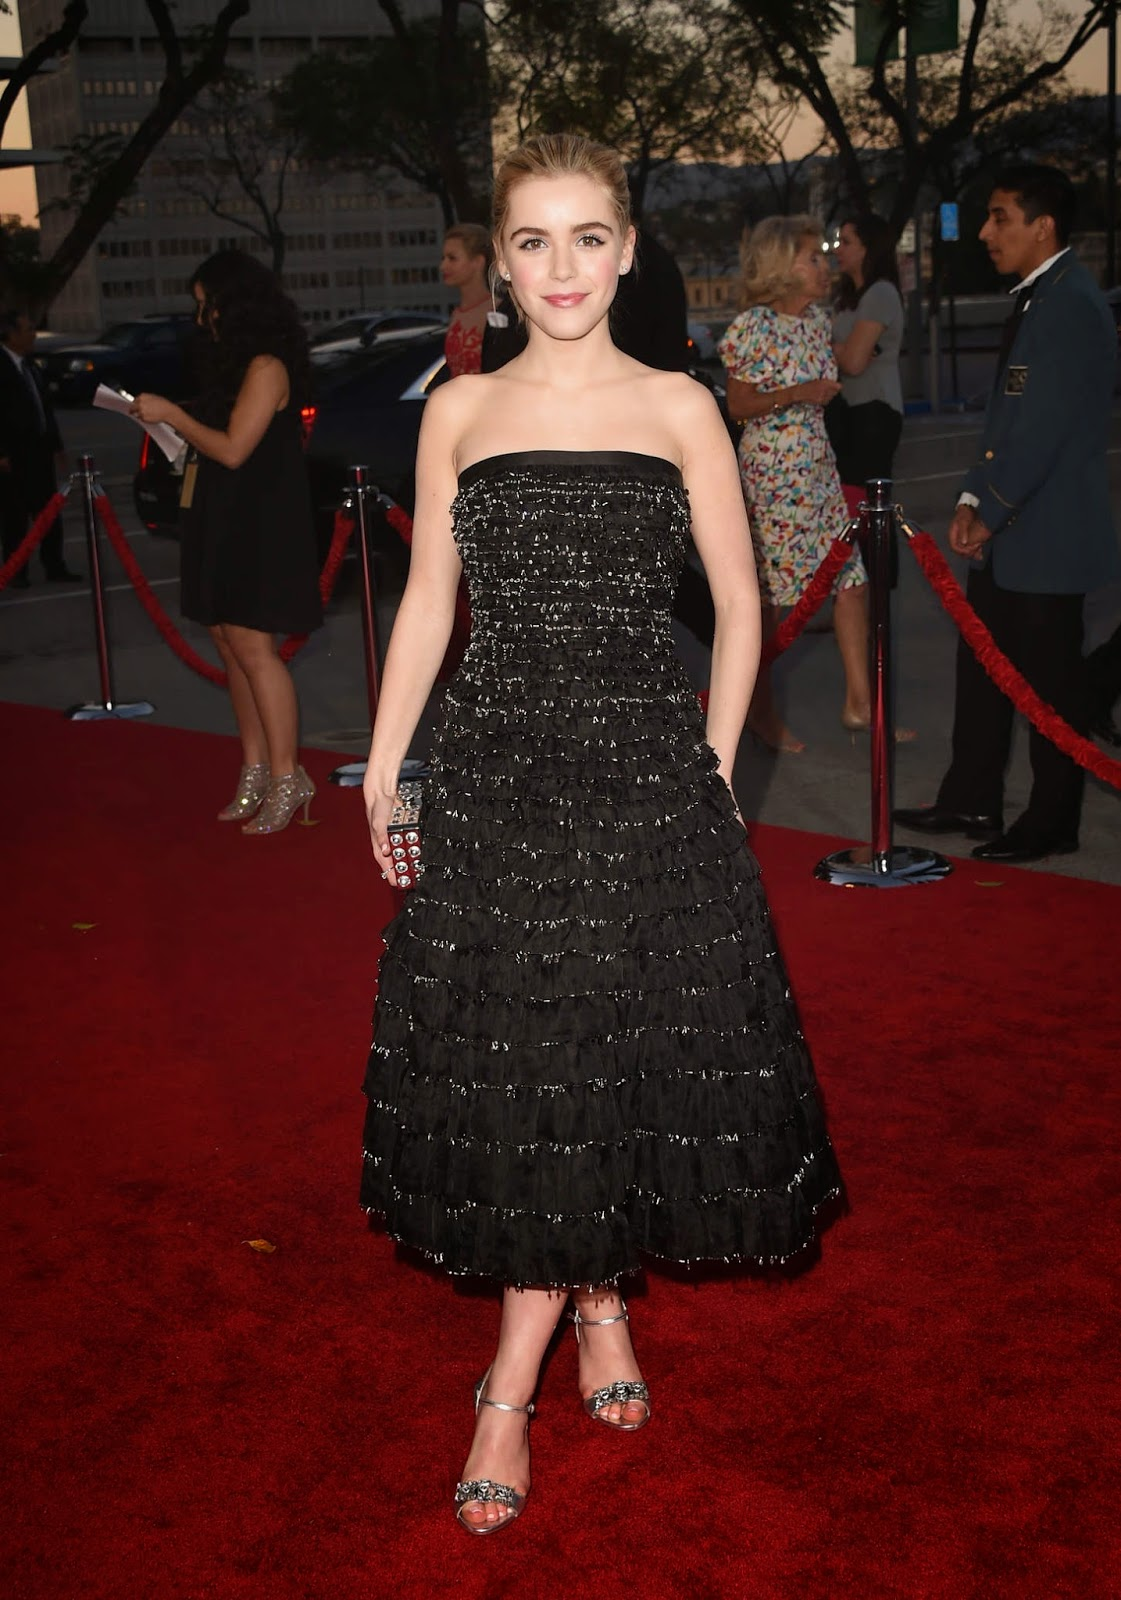 Kiernan Shipka in a strapless dress at the AMC 'Mad Men' Black and Red Ball in LA